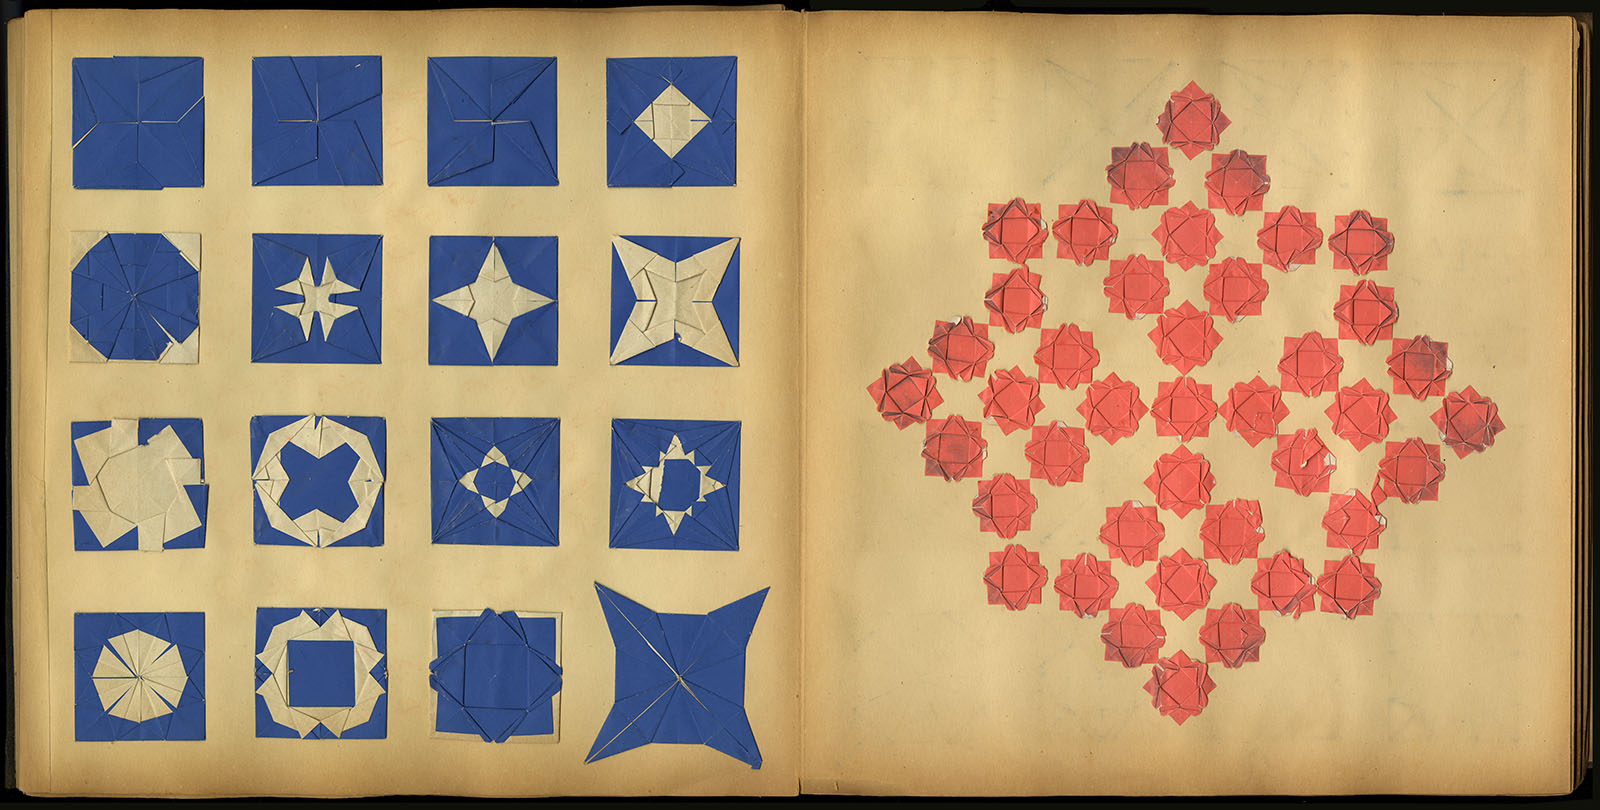 Daisy Lowengrund, Portfolio of Colored Paper Cut-outs (ca. 1885). Gift of Mr. and Mrs. Robert Bendiner.